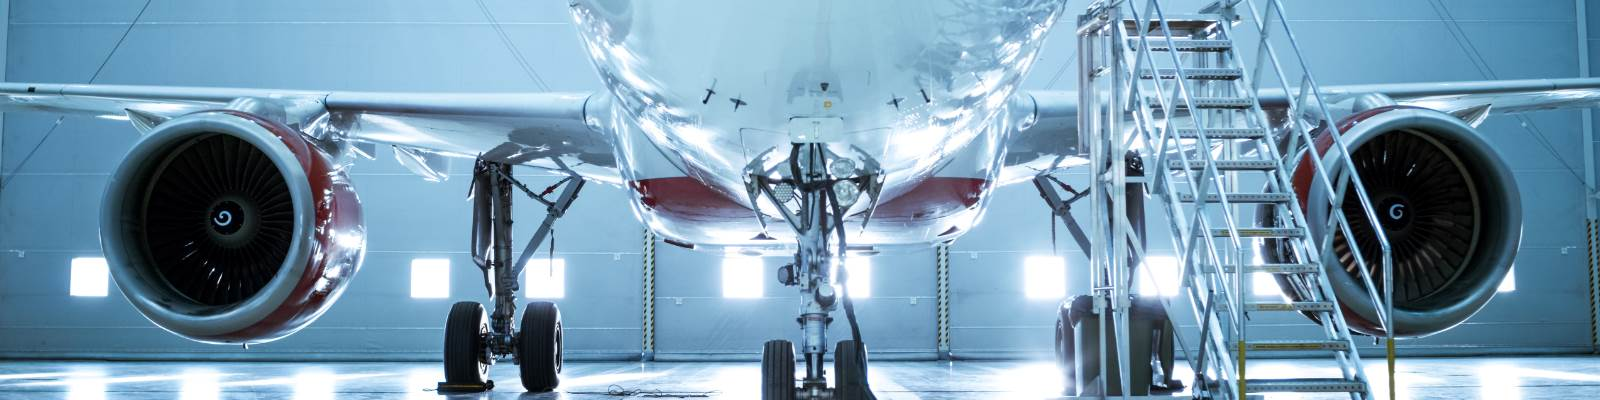 Structural Adhesives for Aerospace Applications